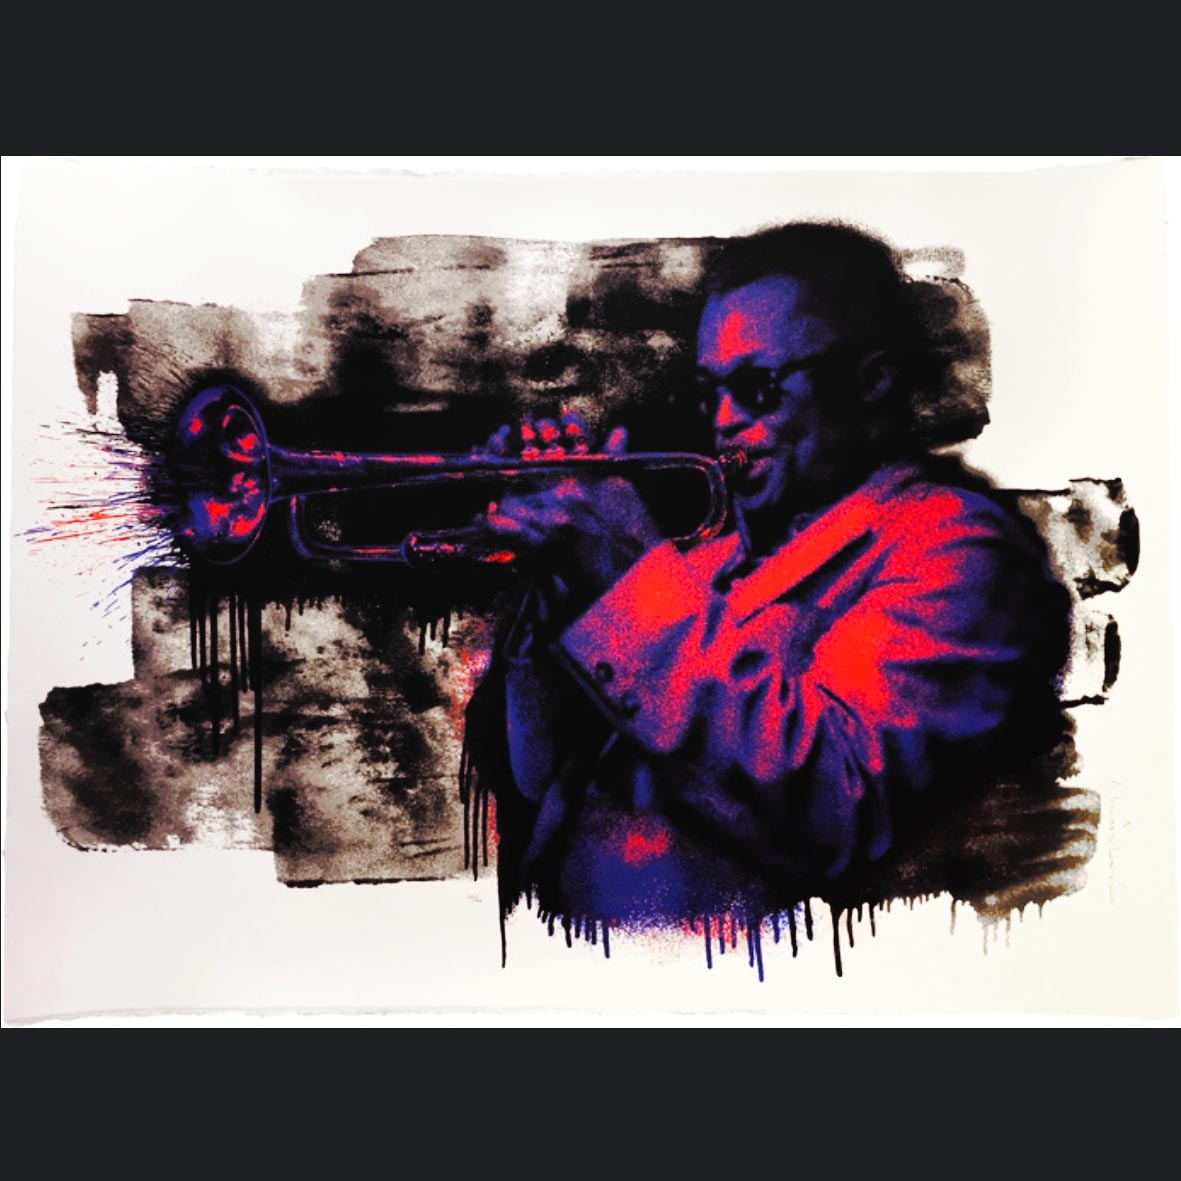 Mr. Brainwash(Therry Guetta), France (1966-), Miles Davis, Signed 2015,Thumbprint of Artist in verso, Six colourway Screenprint on Archival Paper, Purple-Orange edition 9of50, 75 x 55 cm